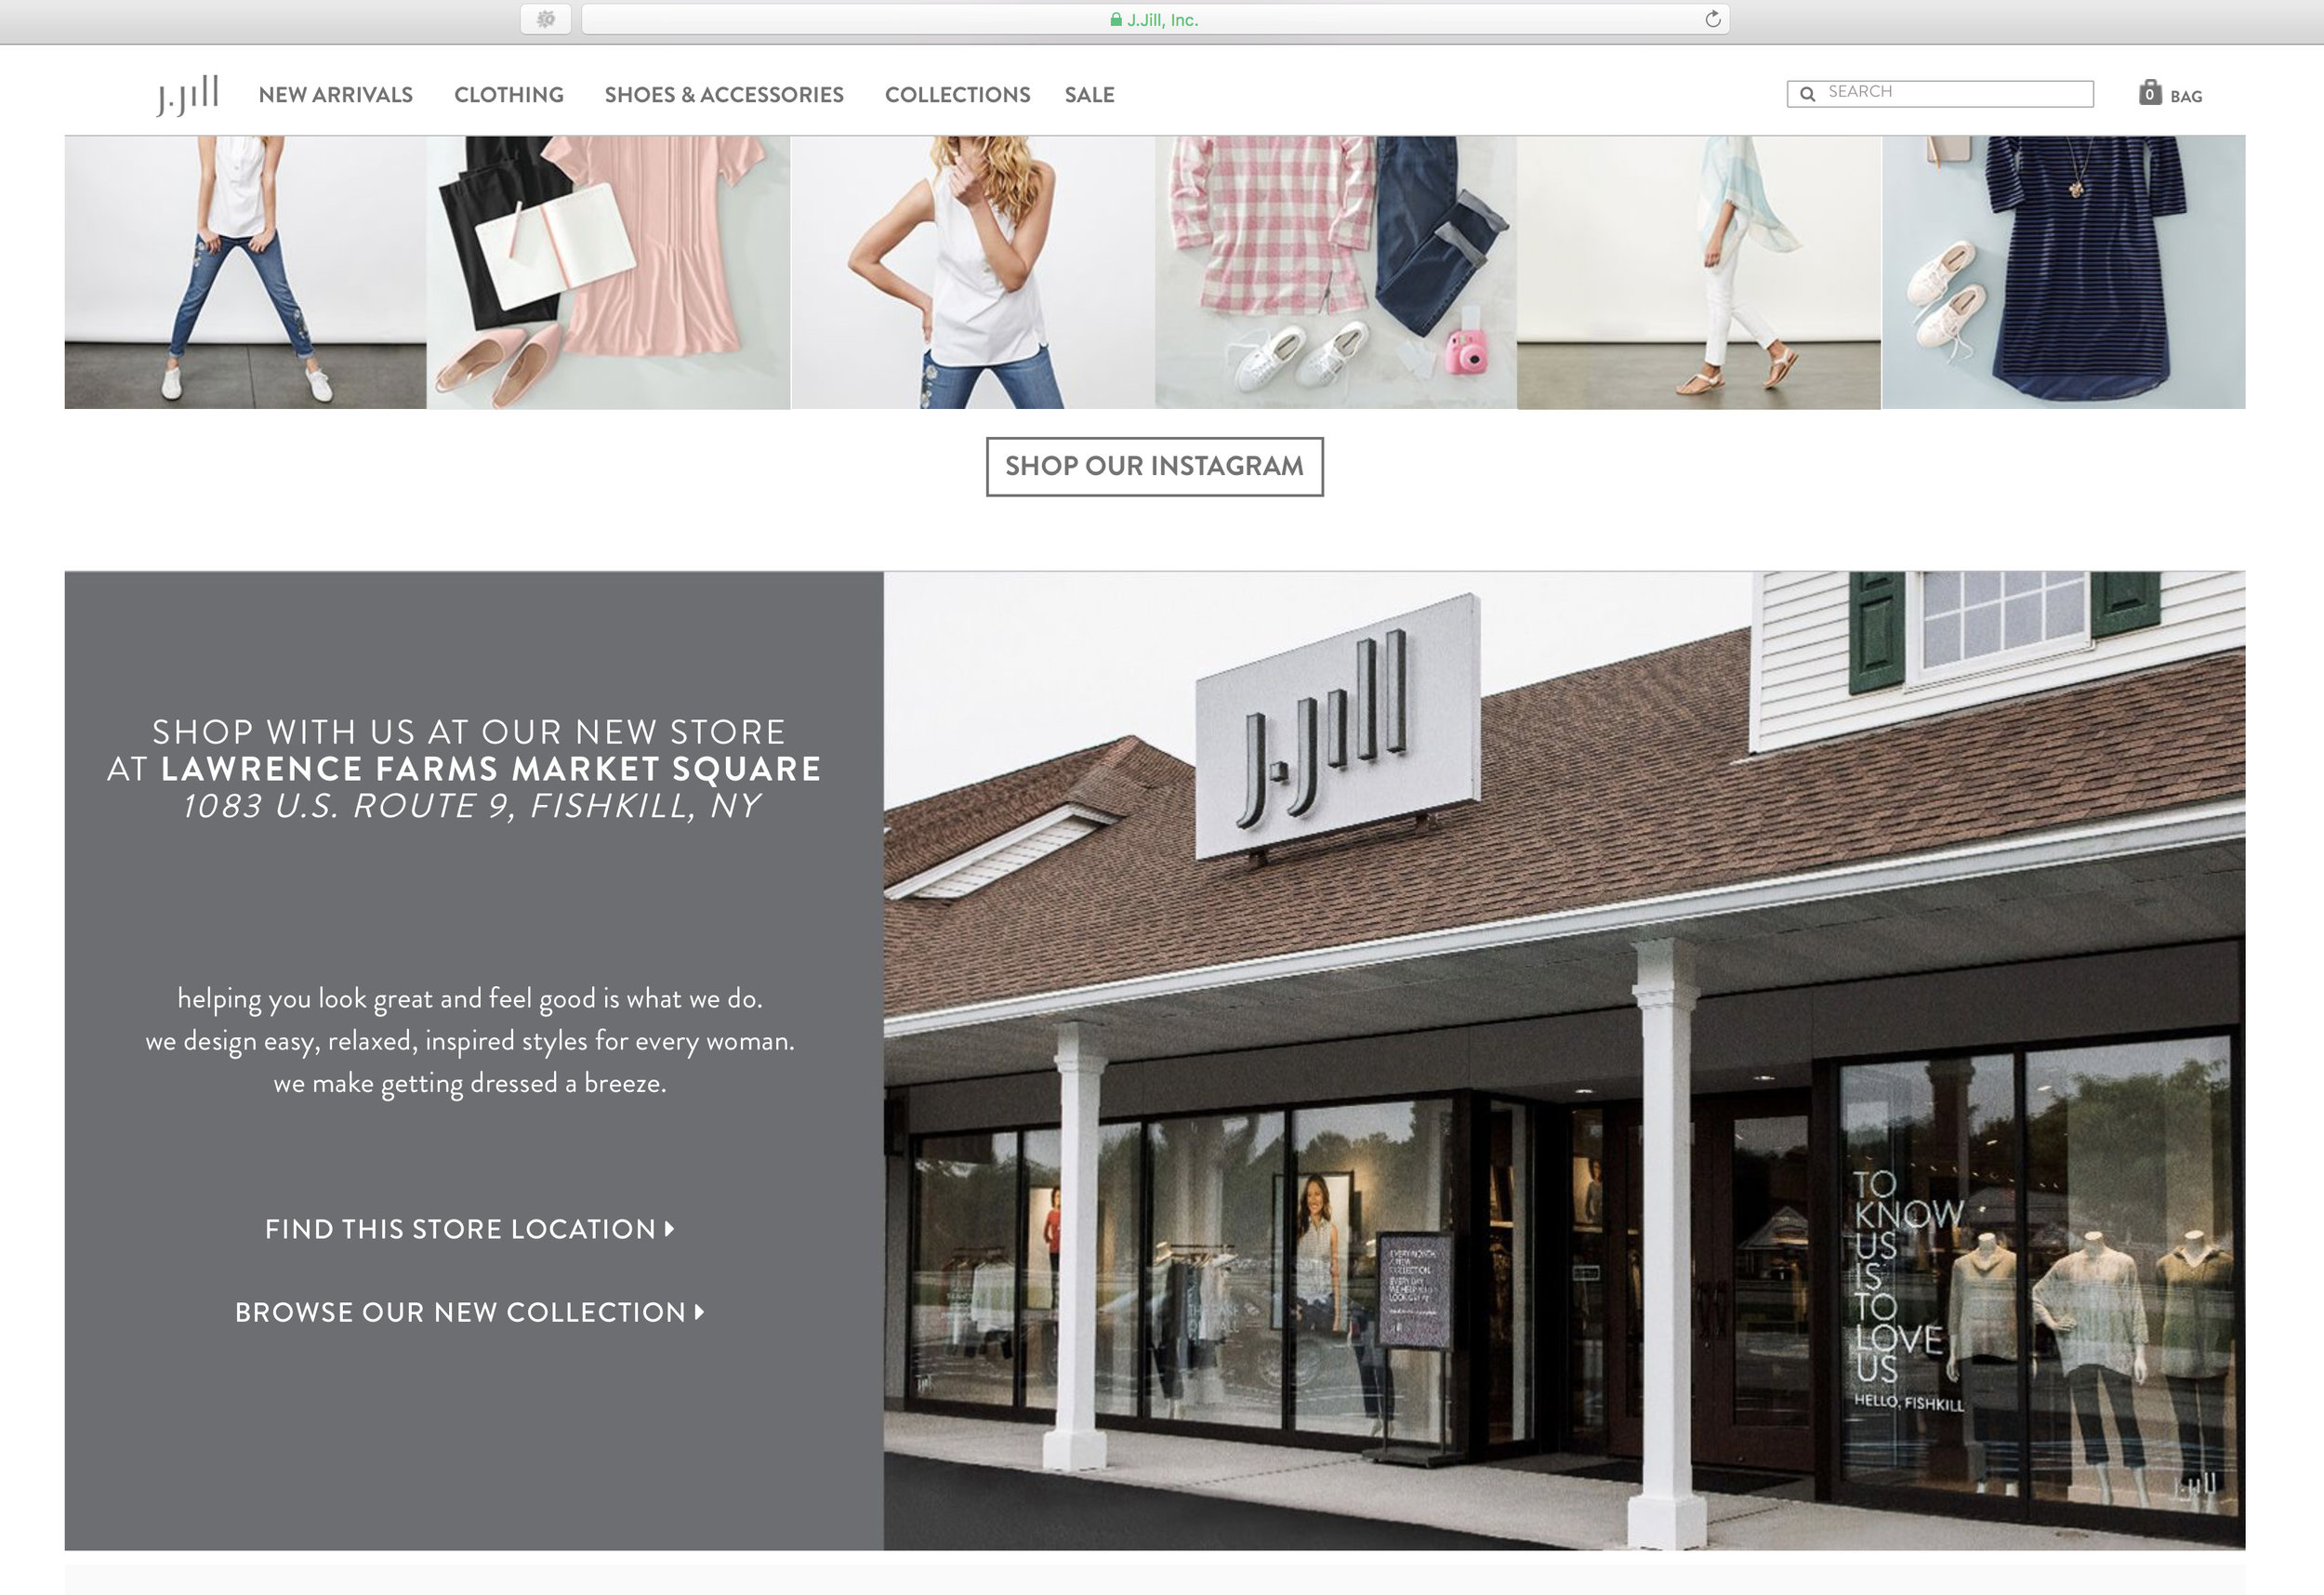 The exterior shot of the showroom has been featured on their landing page of J.Jill's website.